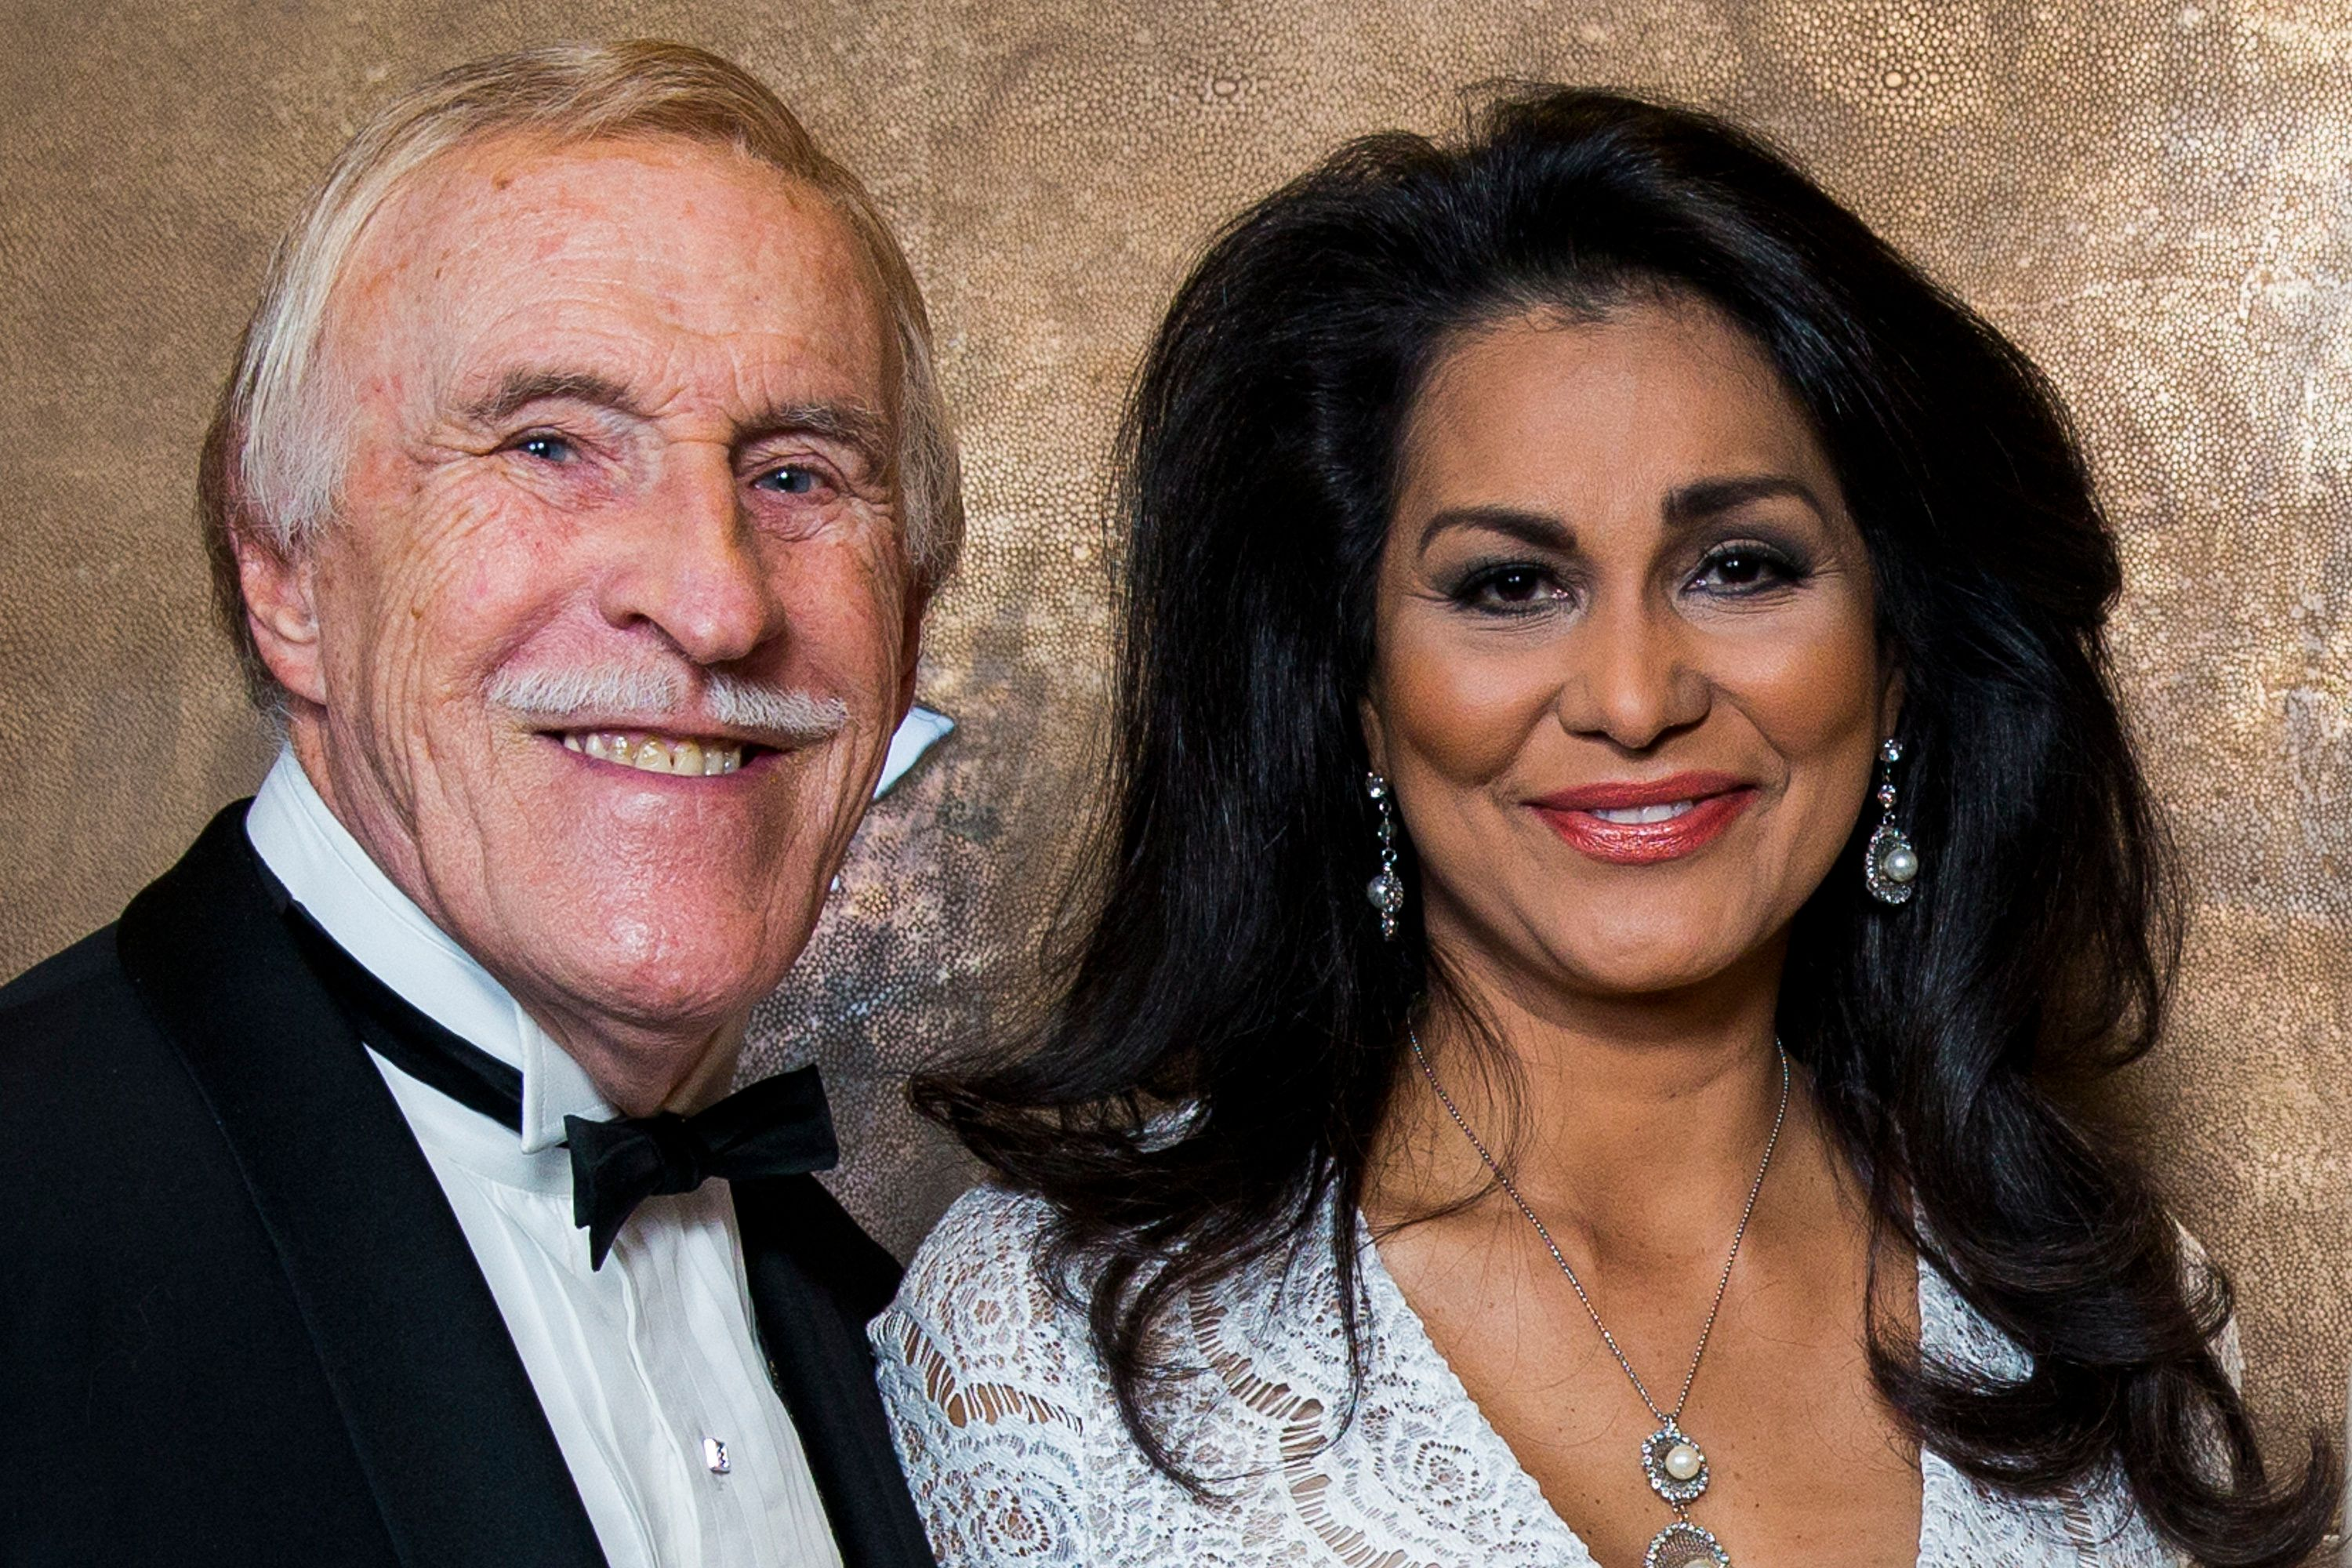 Bruce Forsyth's Wife, Wilnelia, Gives Update On His Health, After Cancelled Public